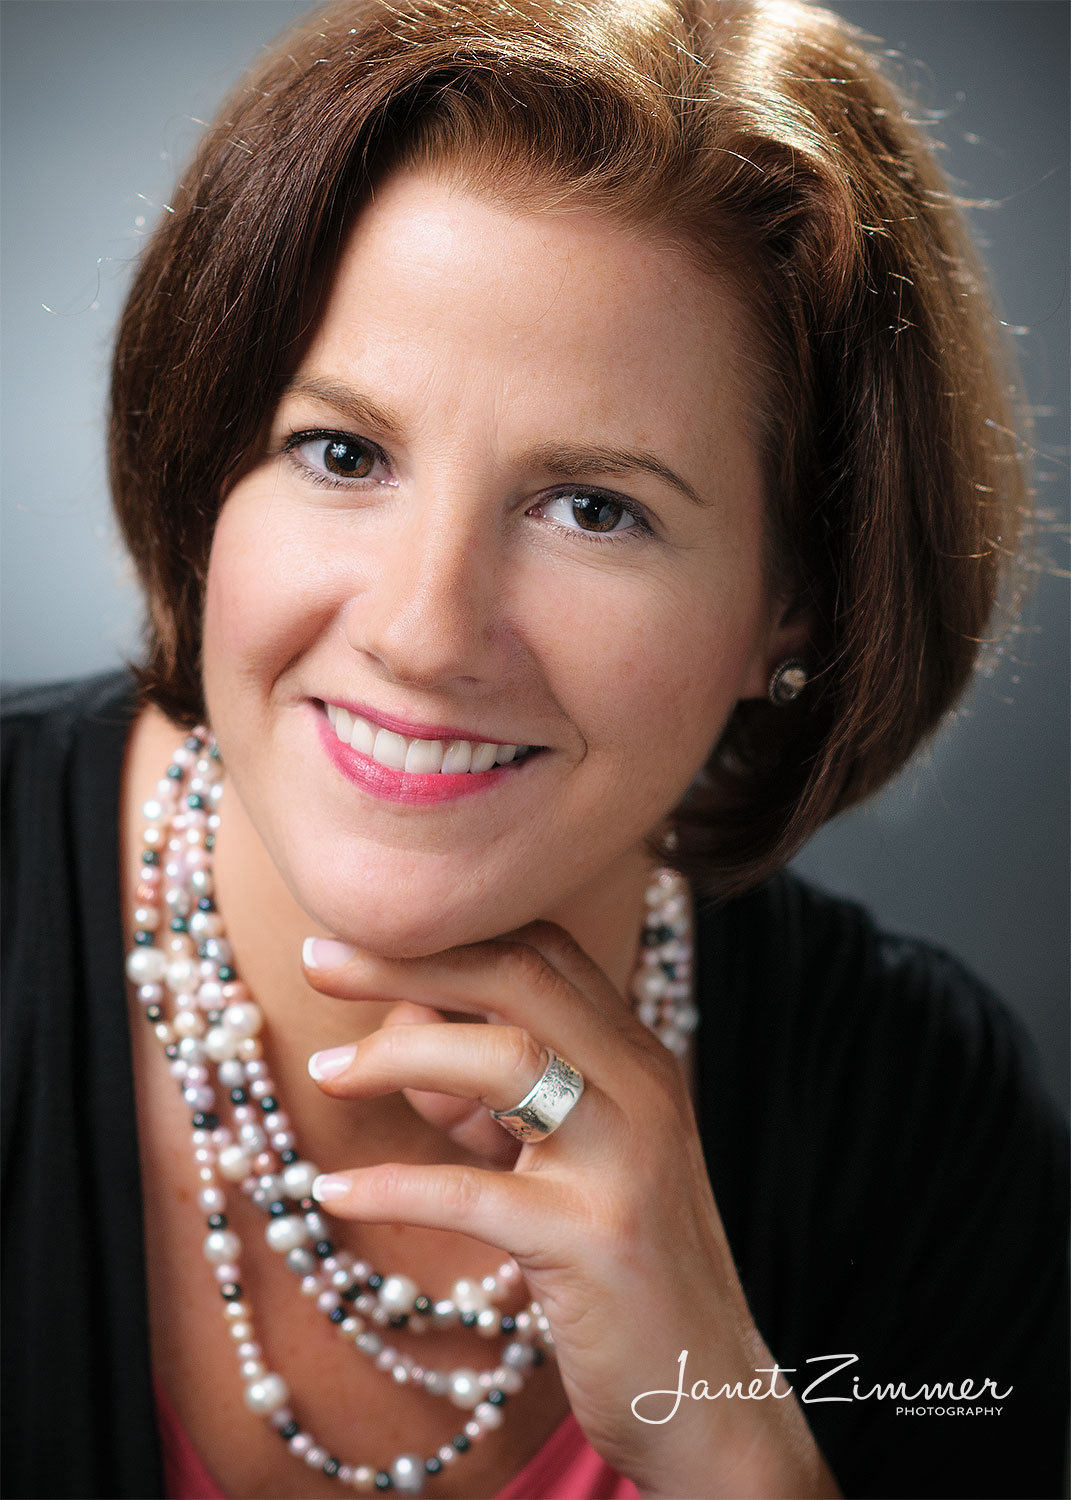 Business-portrait-of-woman-with-jewelry